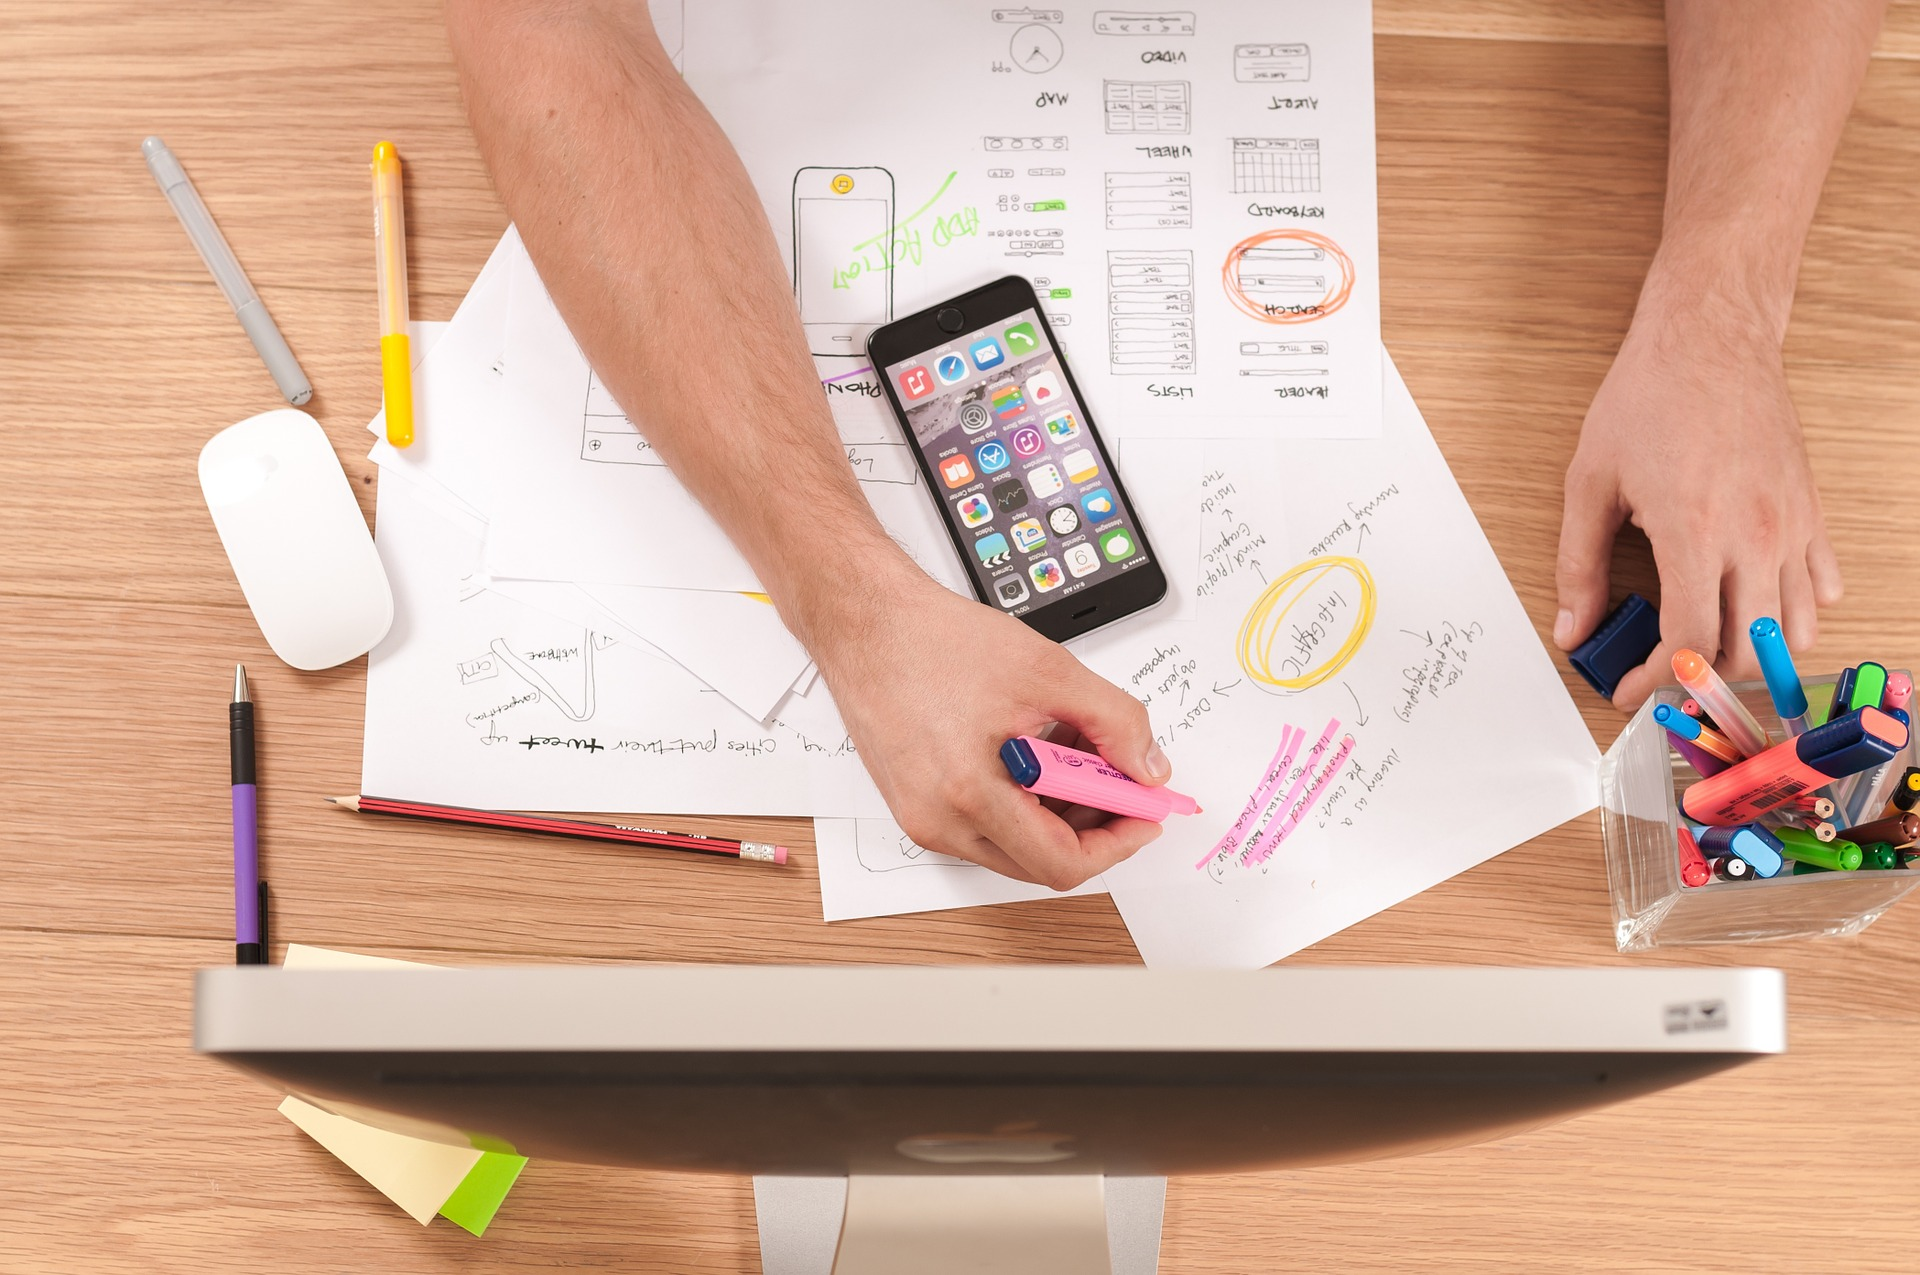 Four Myths About Why Your Business Doesn't Need a Mobile App